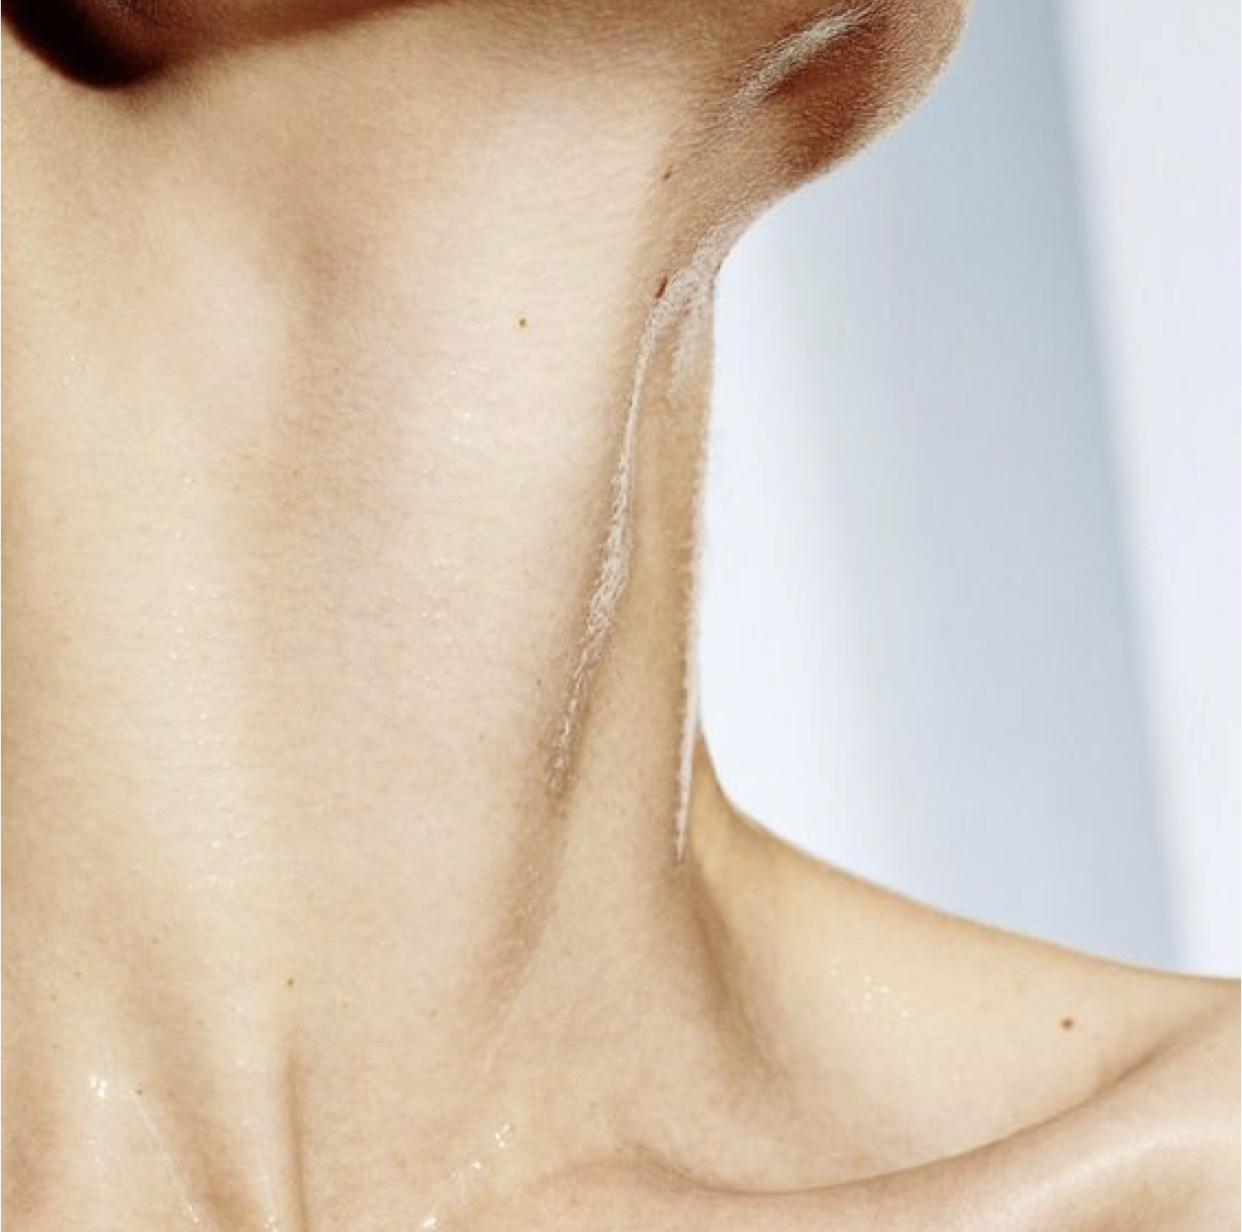 Your thyroid is located in your neck.